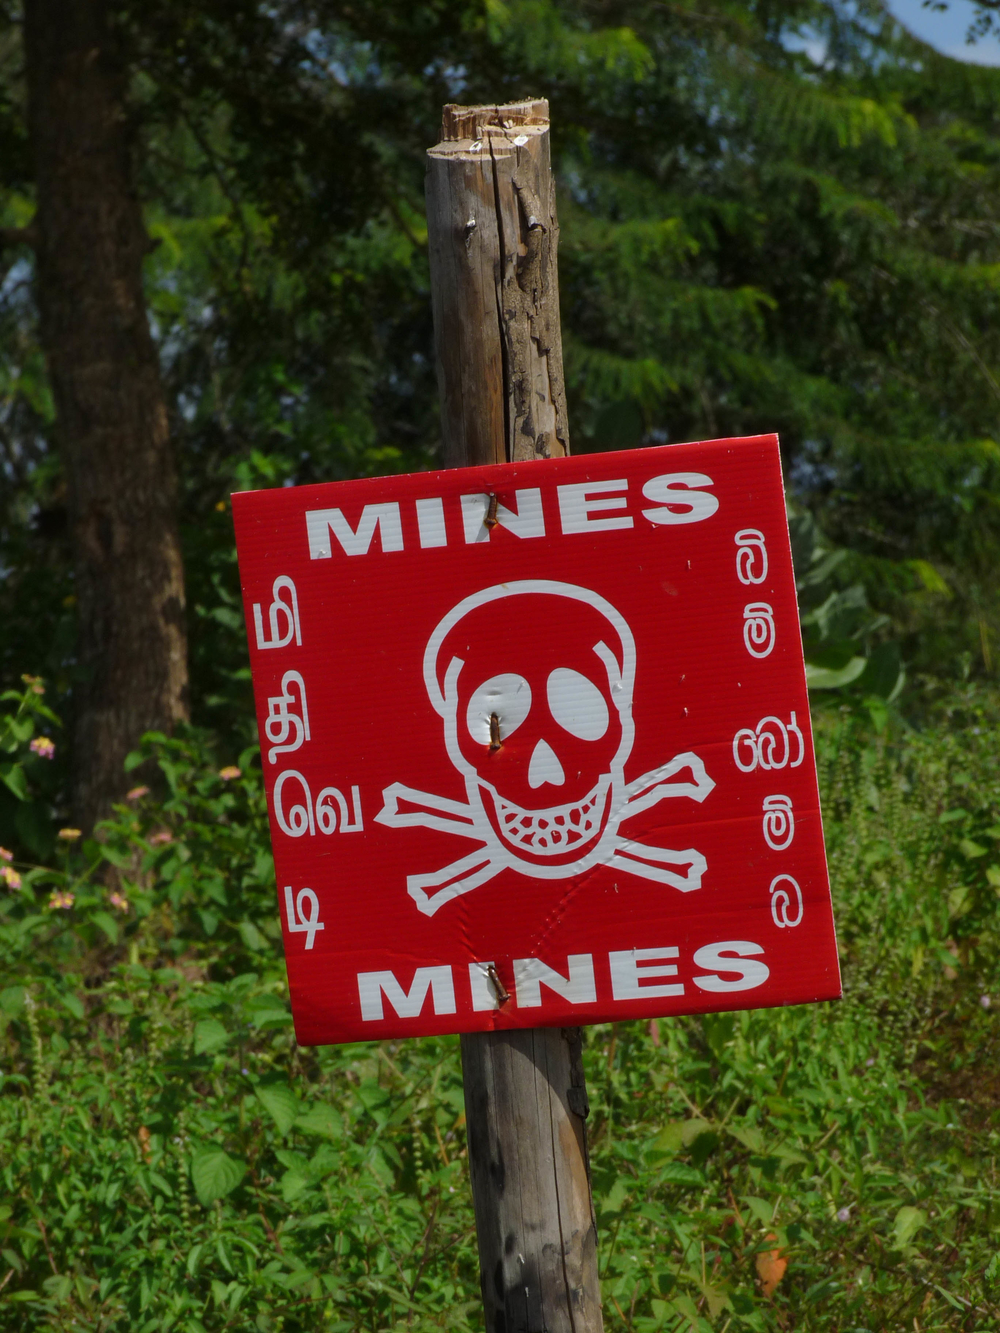 Despite an effective demining and MRE campaigns, mines and UXO's still pose a threat in Sri Lanka's former combat zone